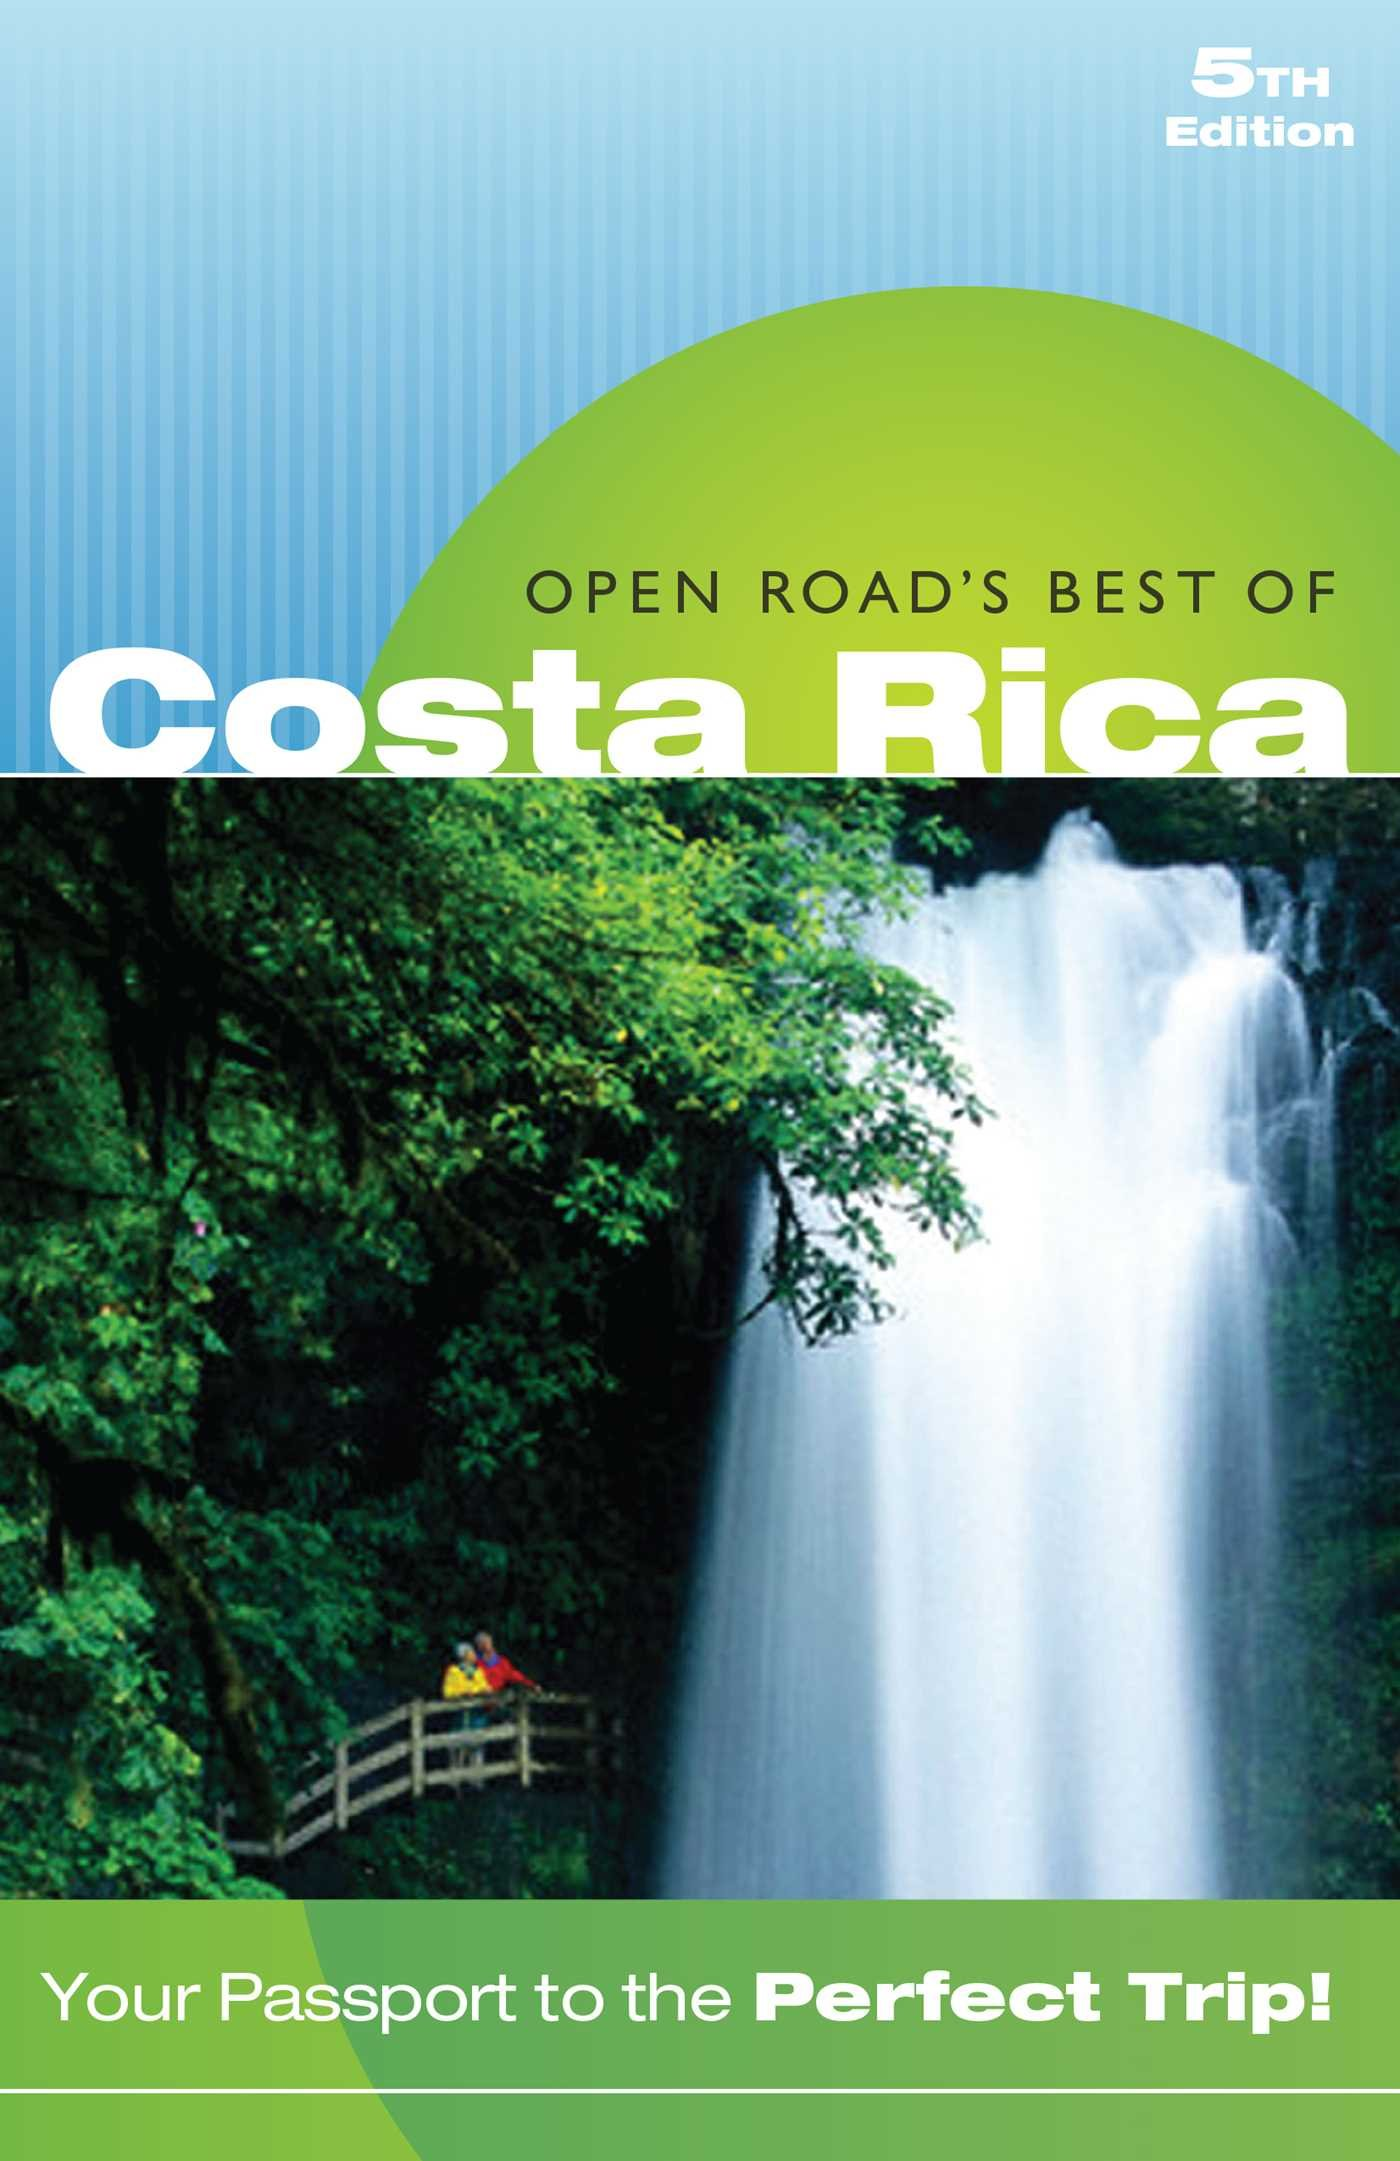 Open Road's Best of Costa Rica (Open Road Travel Guides)